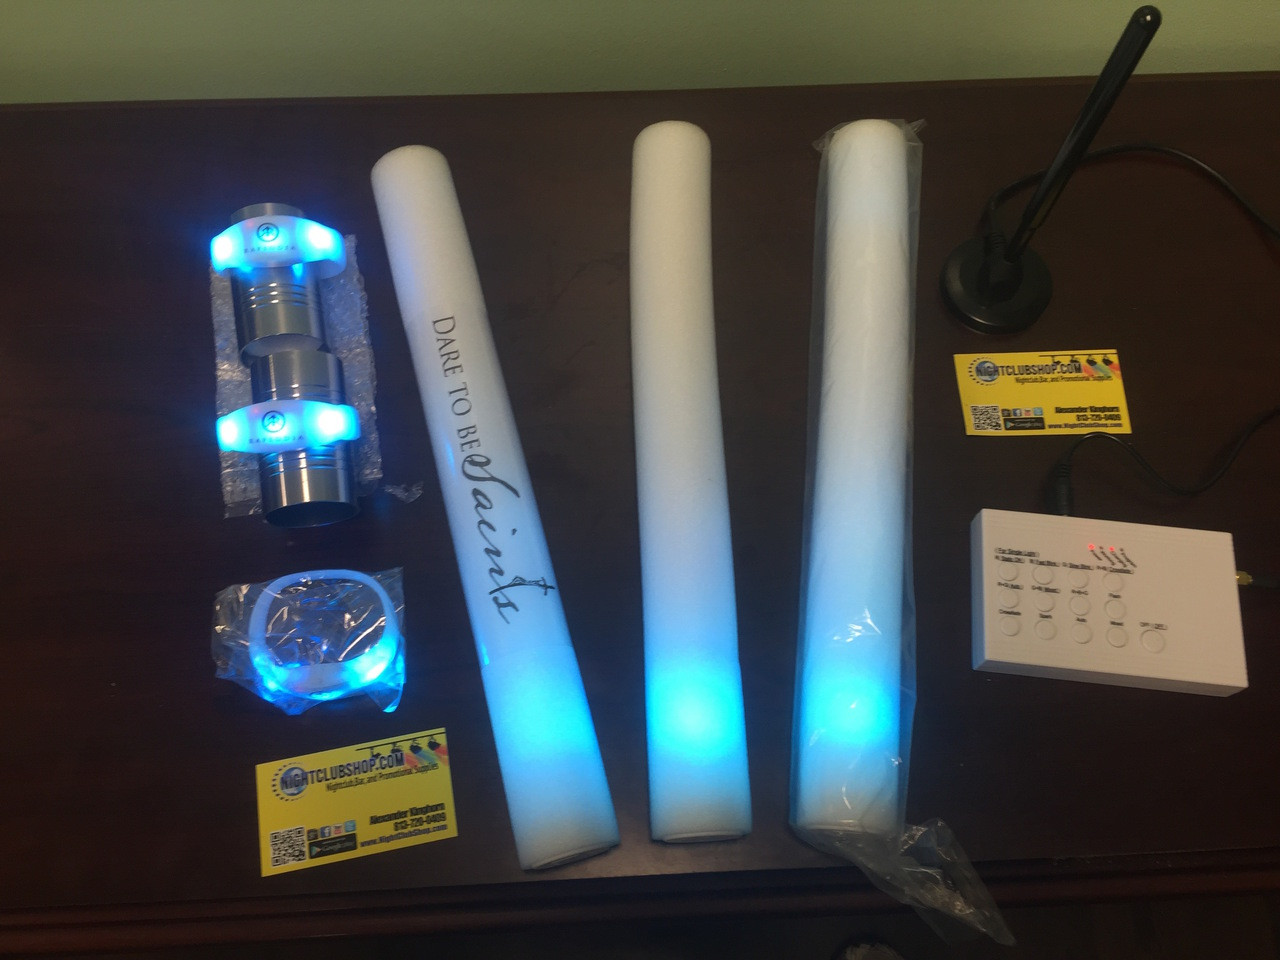 Remote, Control, Base,Unit, Controller, RF, RFID, RF LED wristband, RF LED Foam Stick, Rf LED Glorifier, RF LED BeachBall